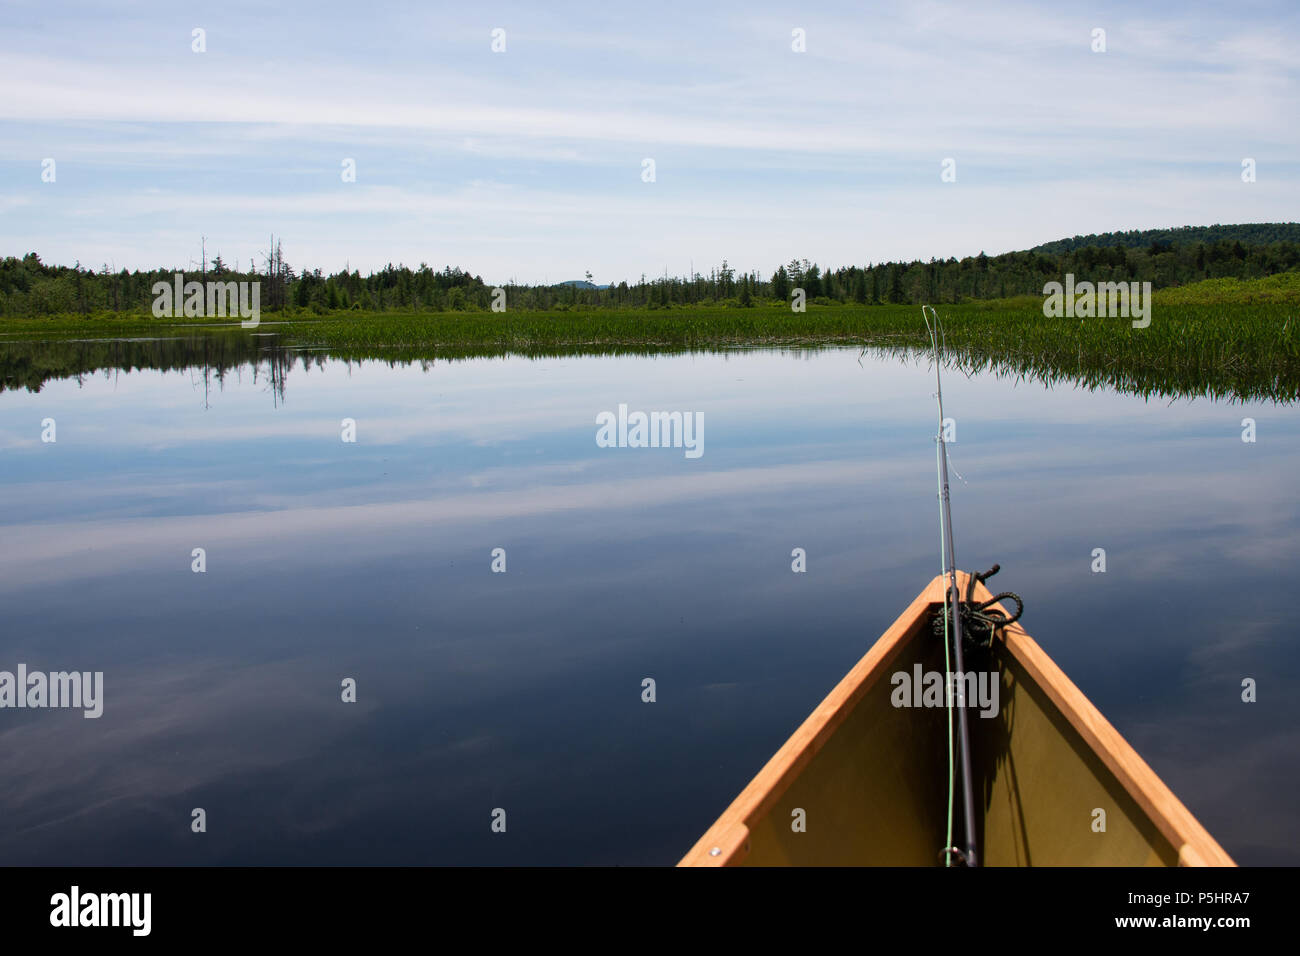 A lightweight Kevlar canoe with a fly fishing rod floating on Kunjamuk Bay on the Sacandaga River in the Adirondack Mountains, NY USA. - Stock Image